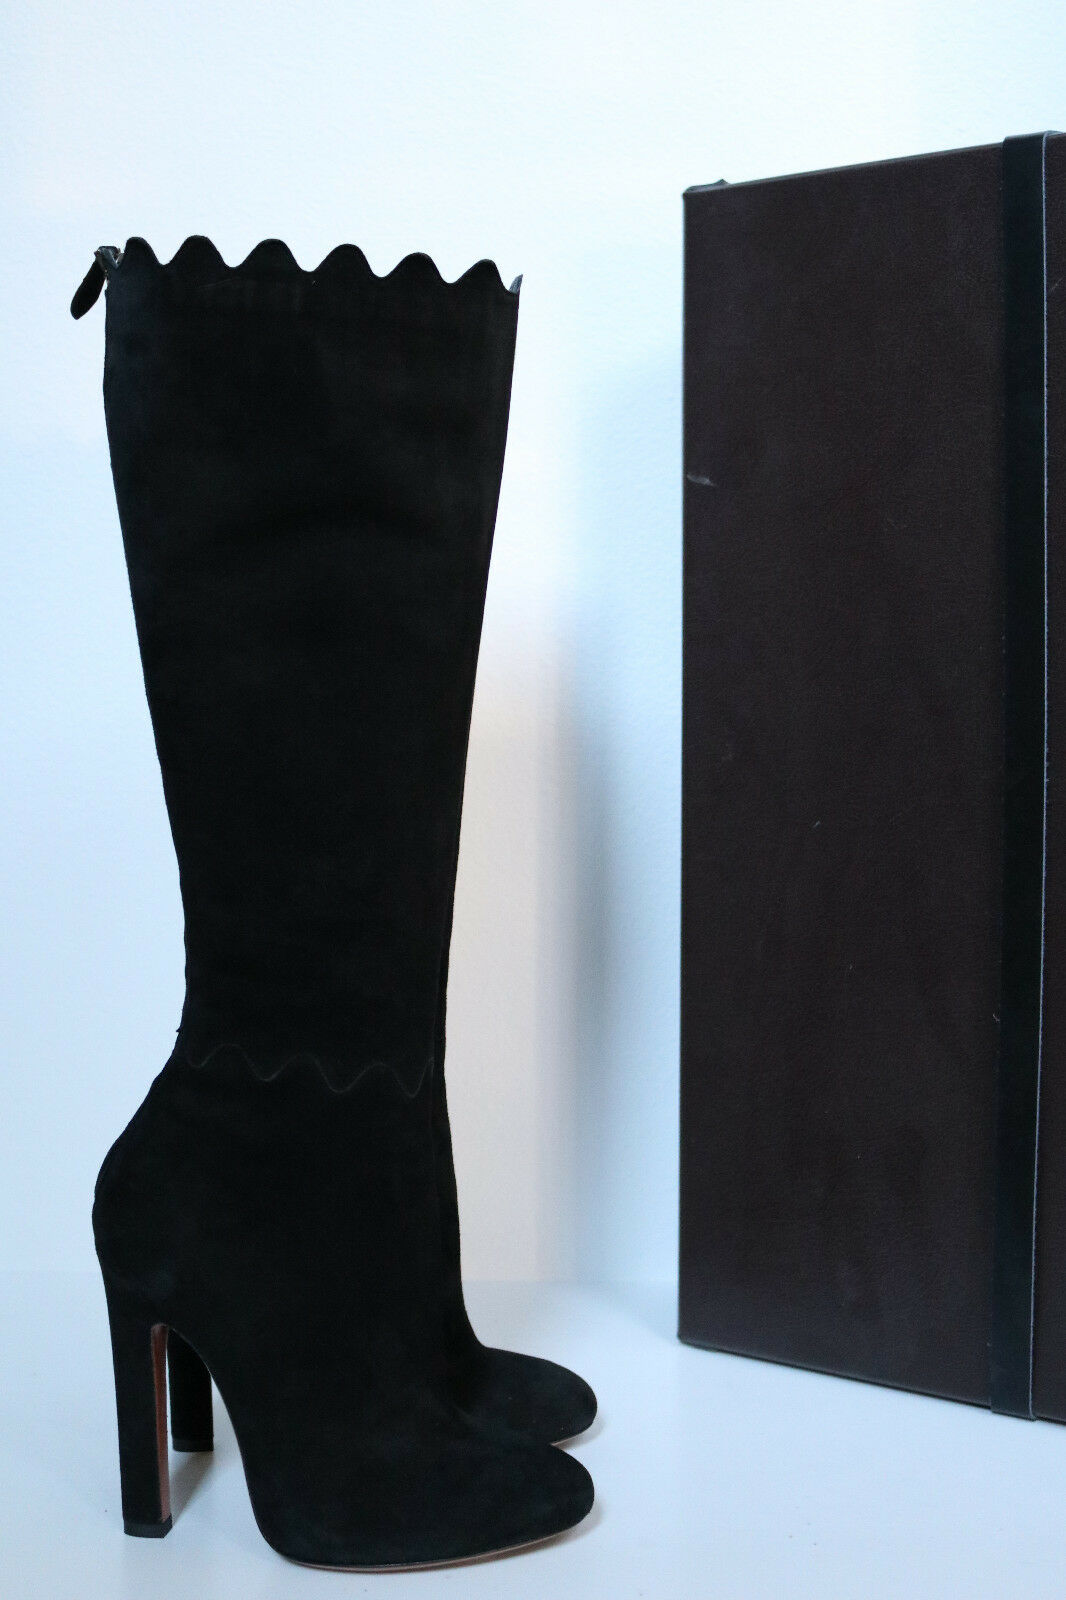 New sz 7 / 37 Azzedine Alaia Black Suede Knee High Tall Boot Heel Shoes